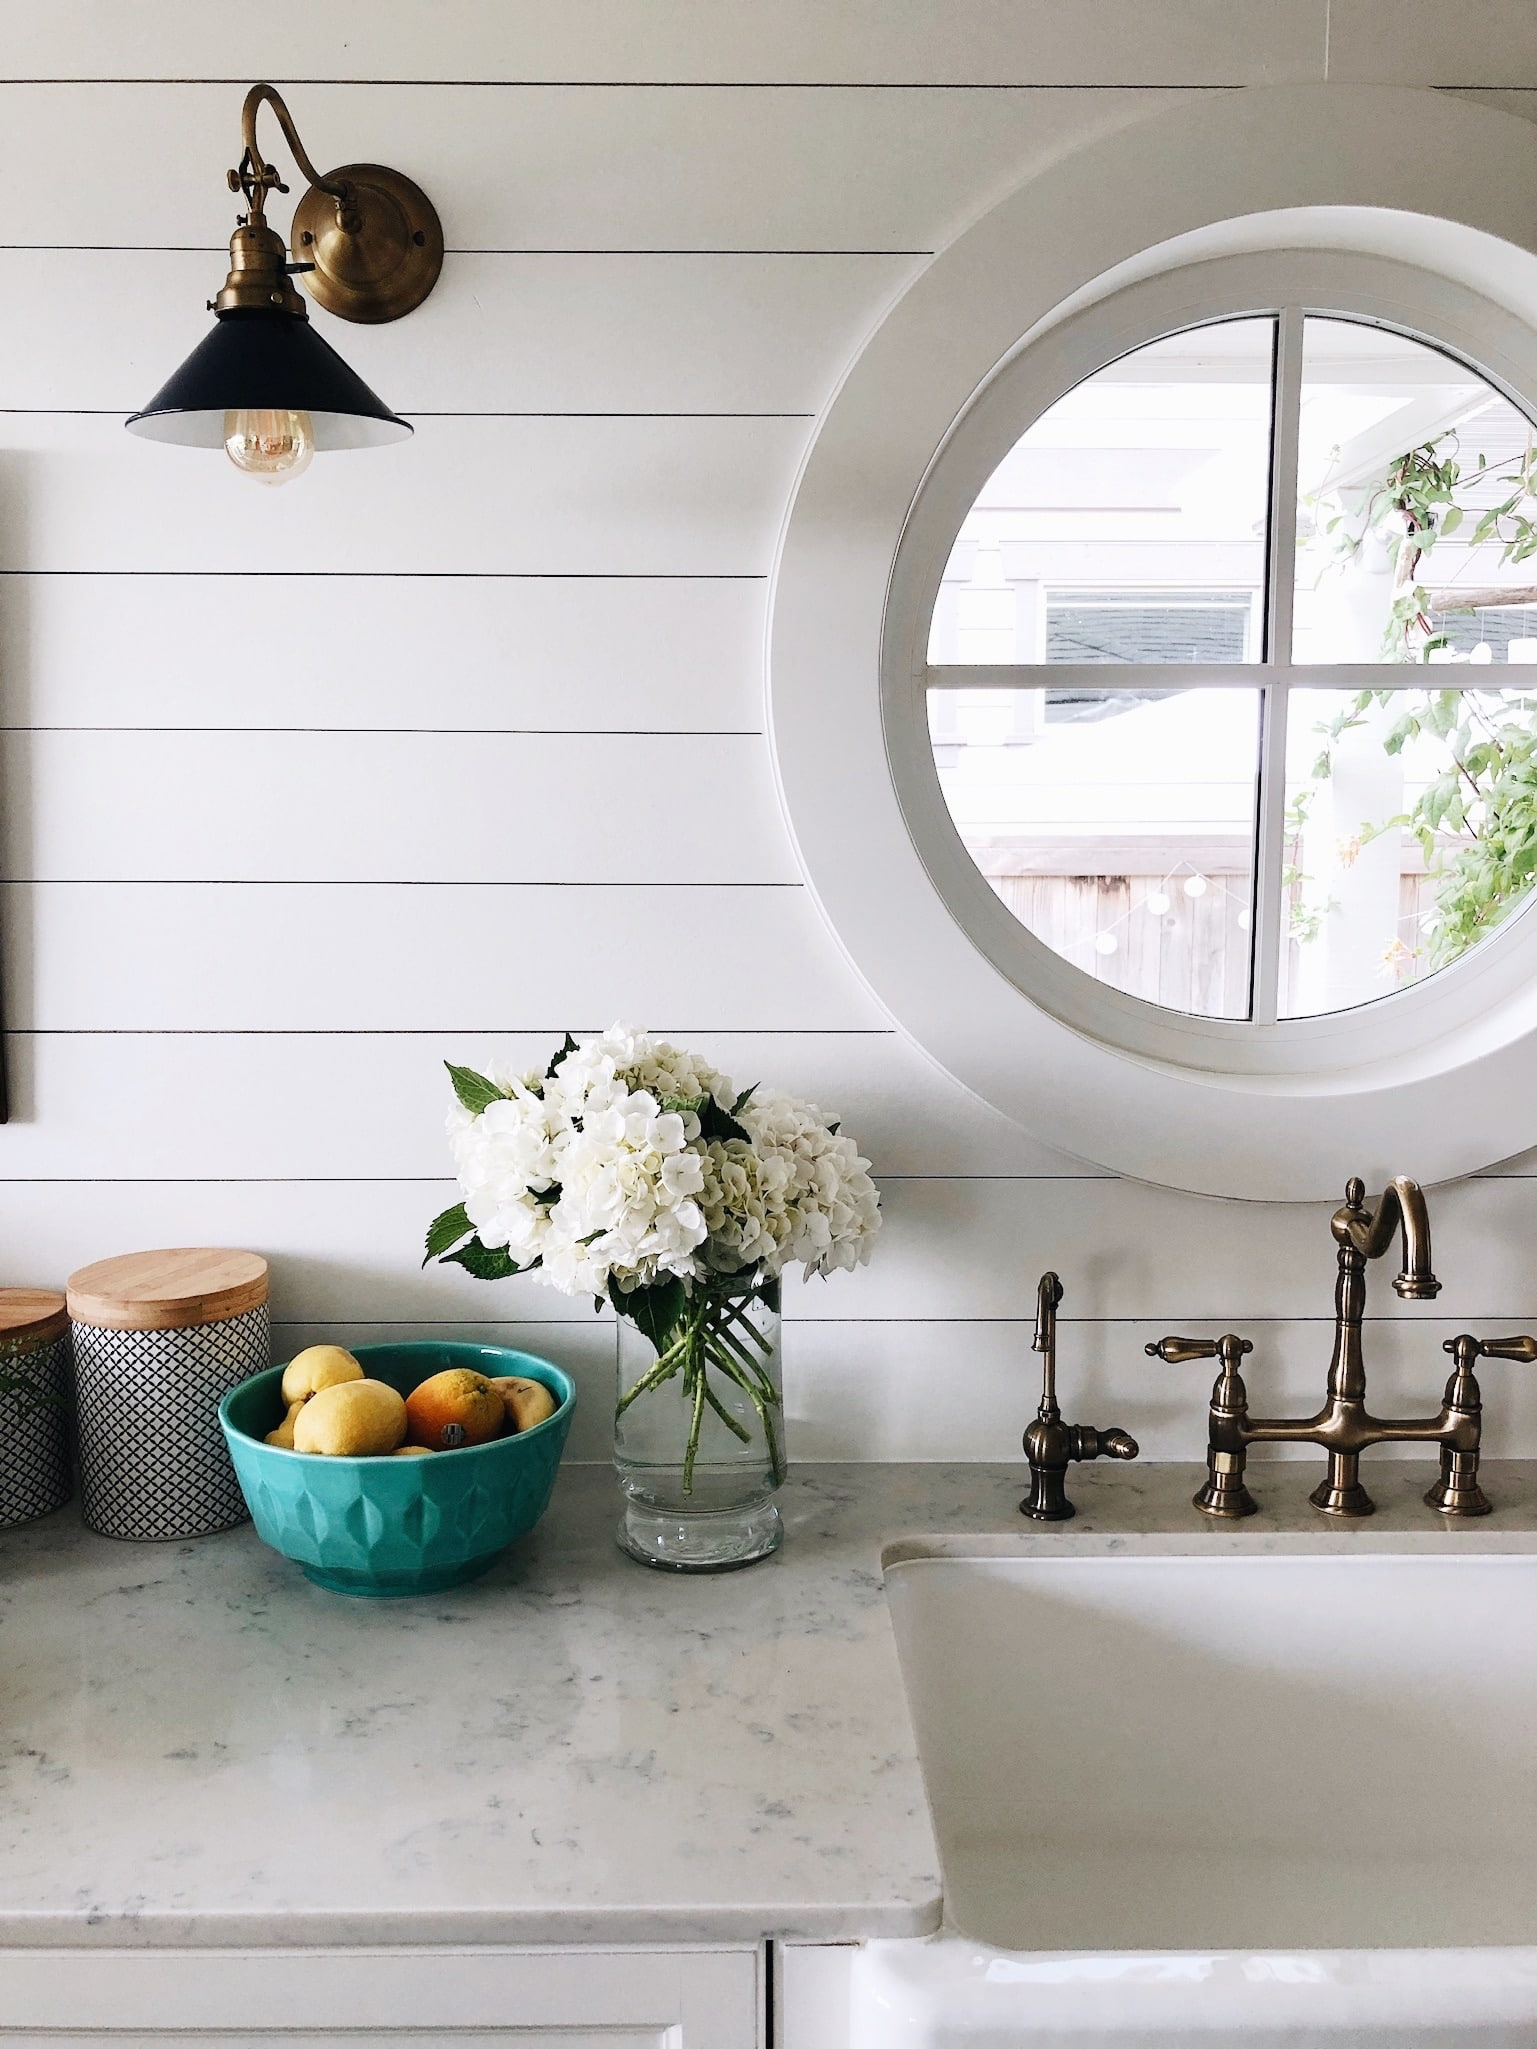 The Joy of a Clean Sink+ Four Daily Routines